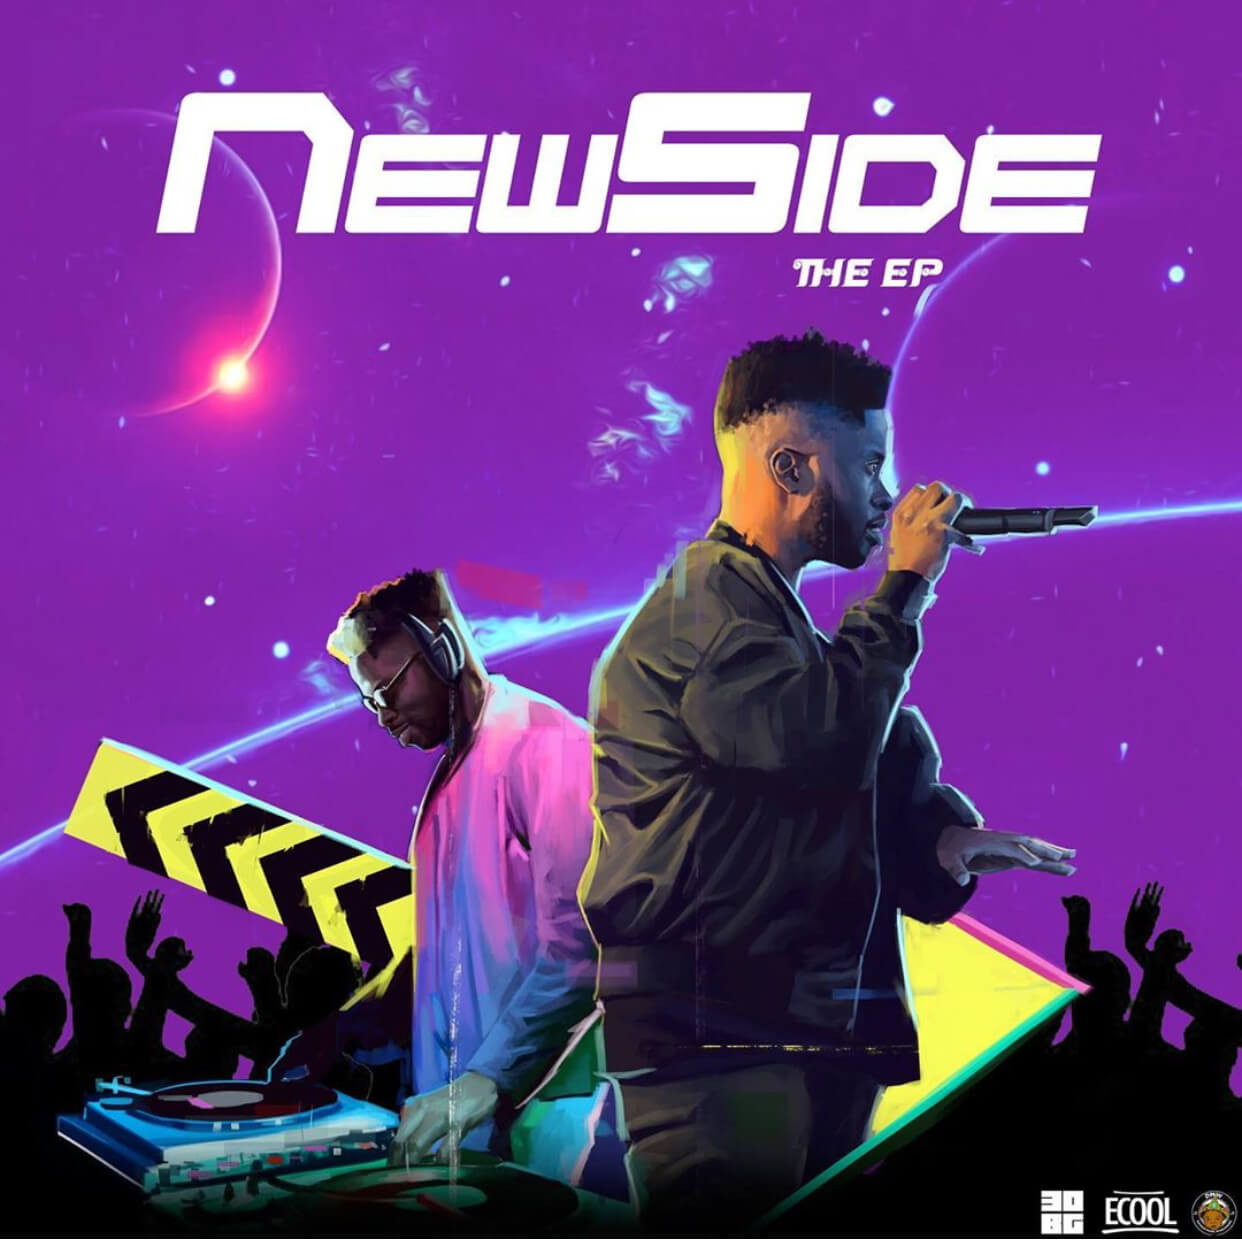 DJ Ecool serves us with the NewSide EP